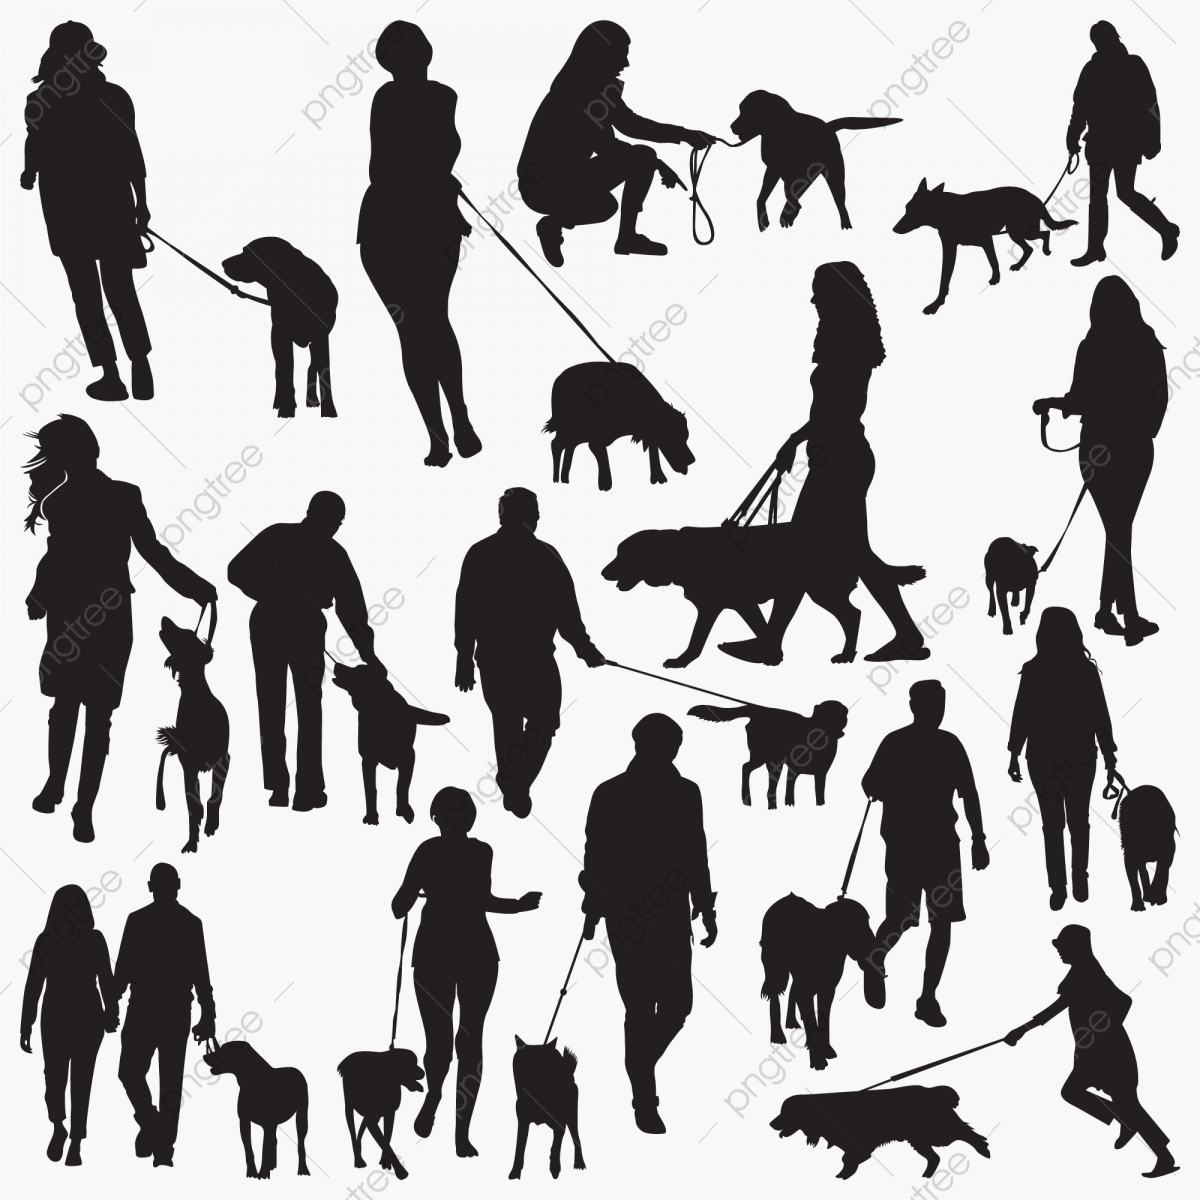 walk with dog silhouettes 50s 60s animal png and vector with transparent background for free download https pngtree com freepng walk with dog silhouettes 5099563 html